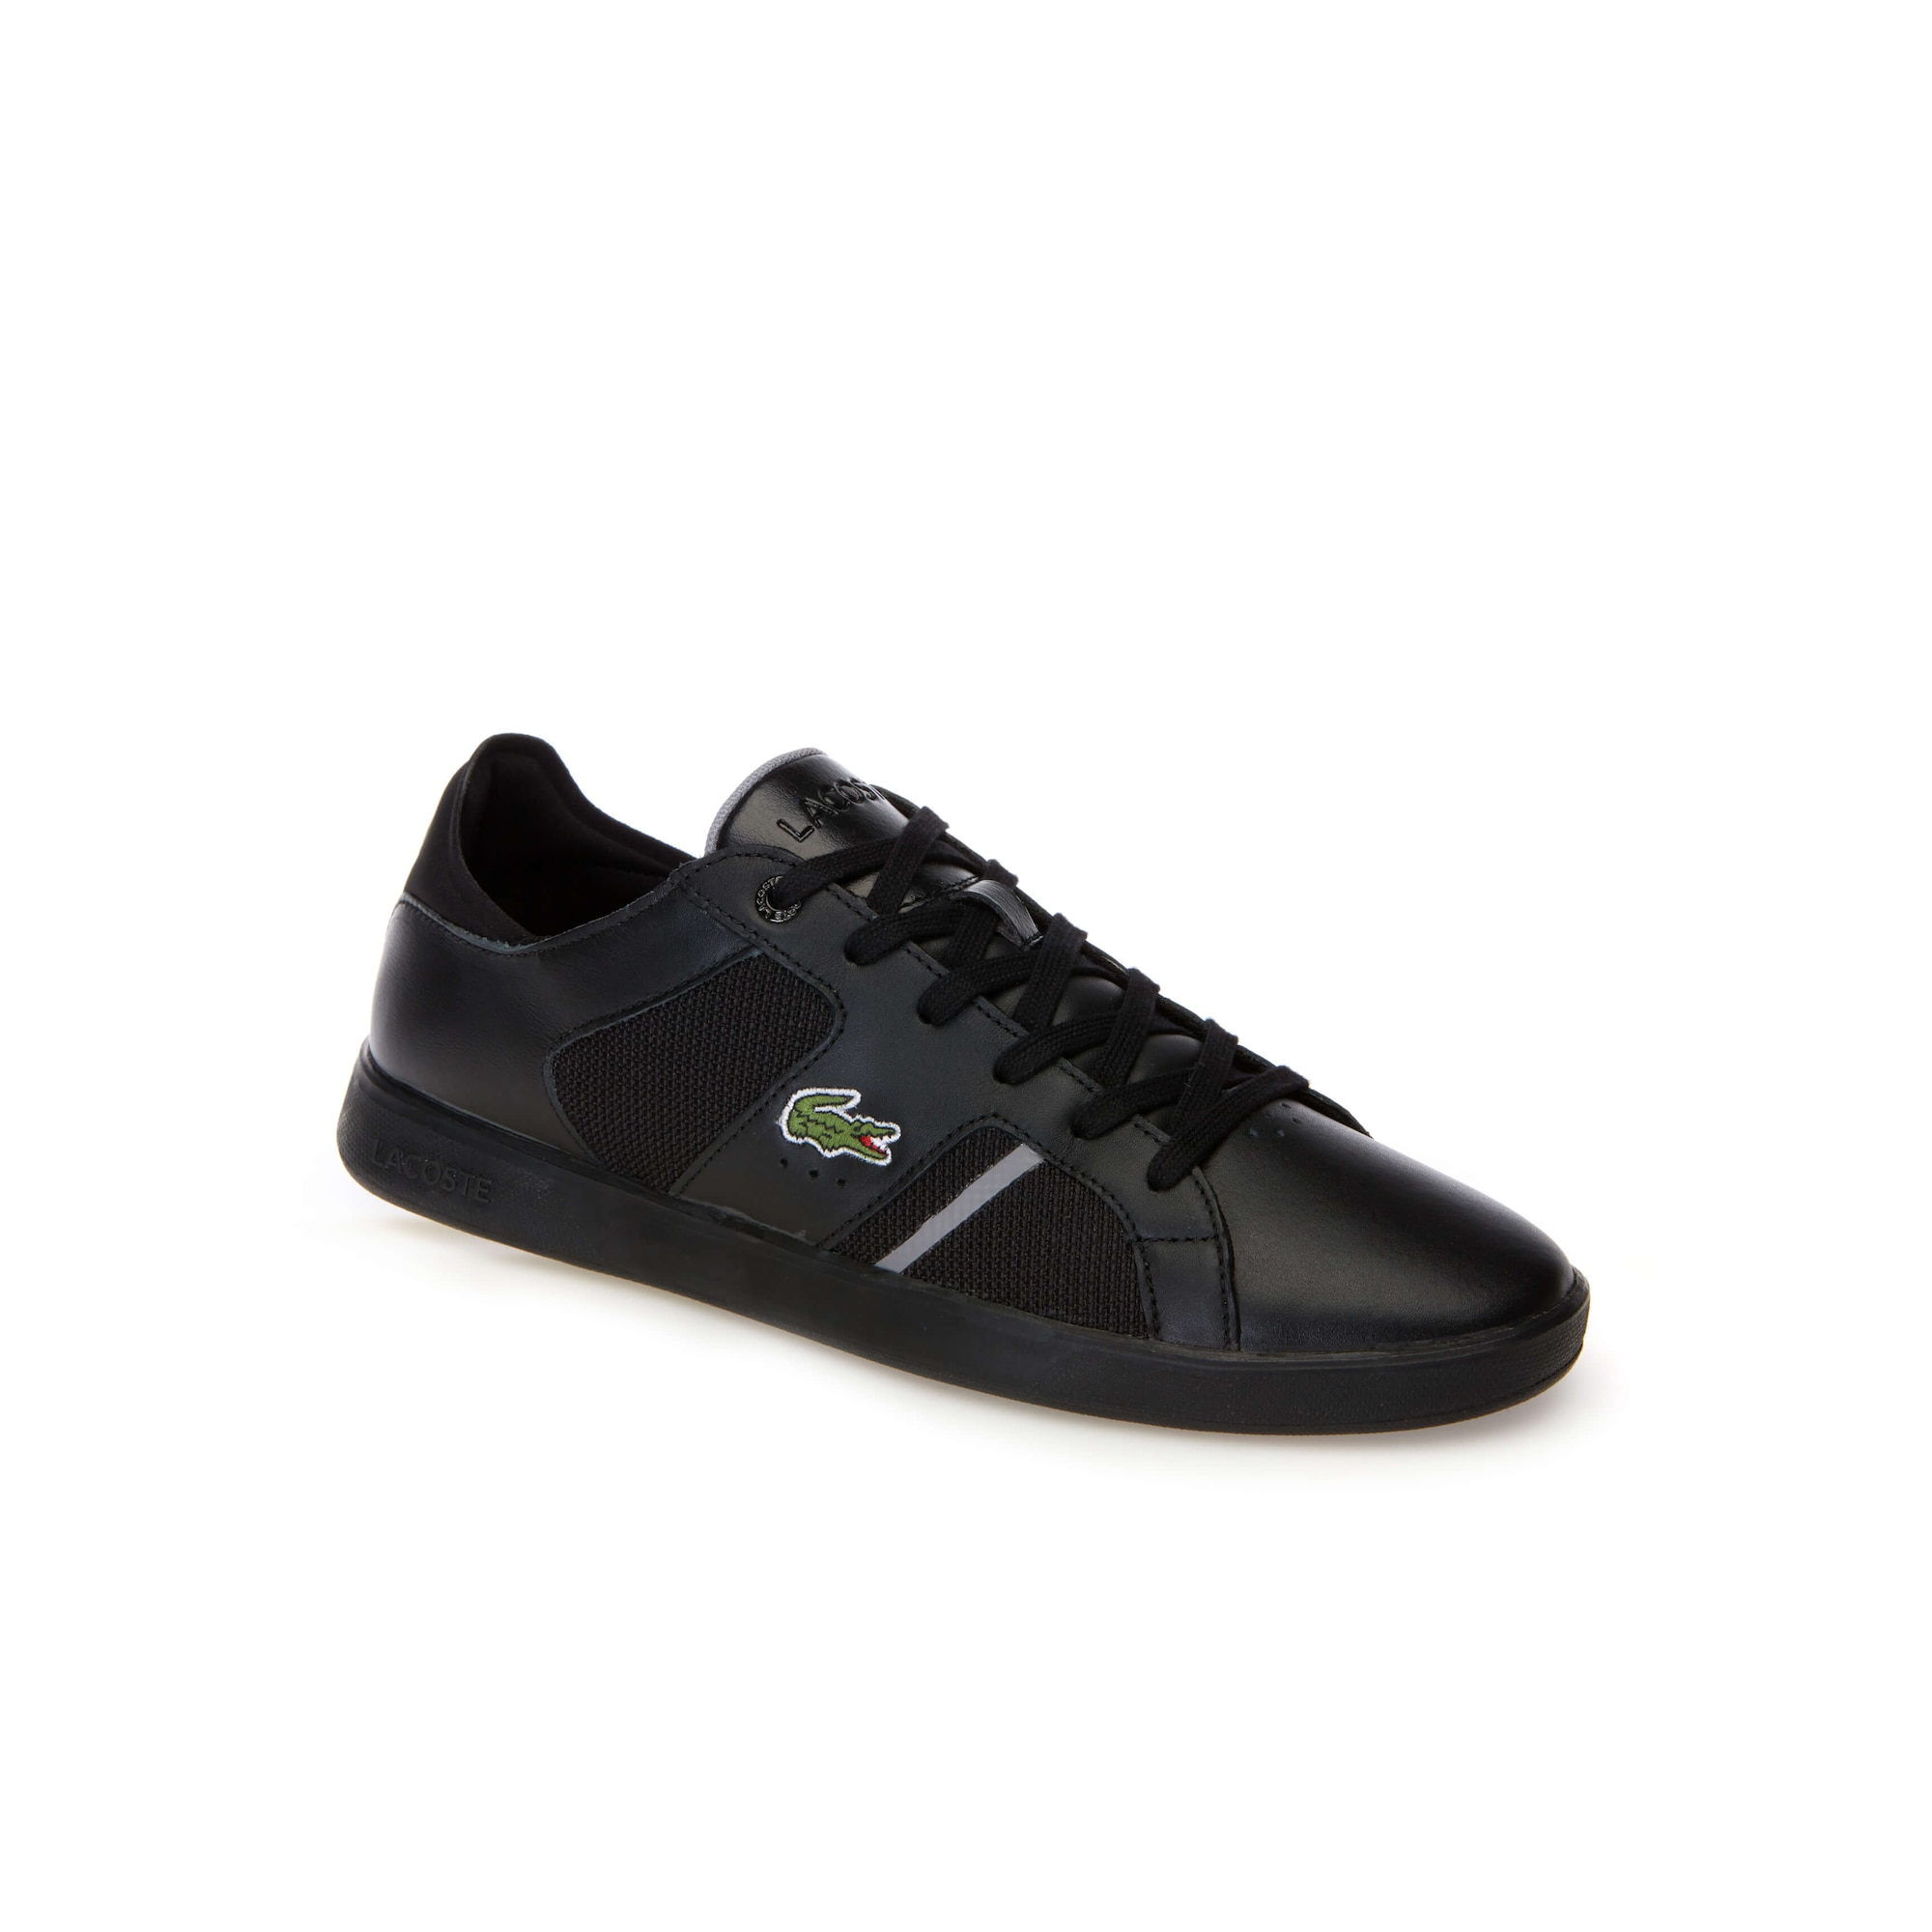 Men's Novas Nappa Leather and Mesh Trainers